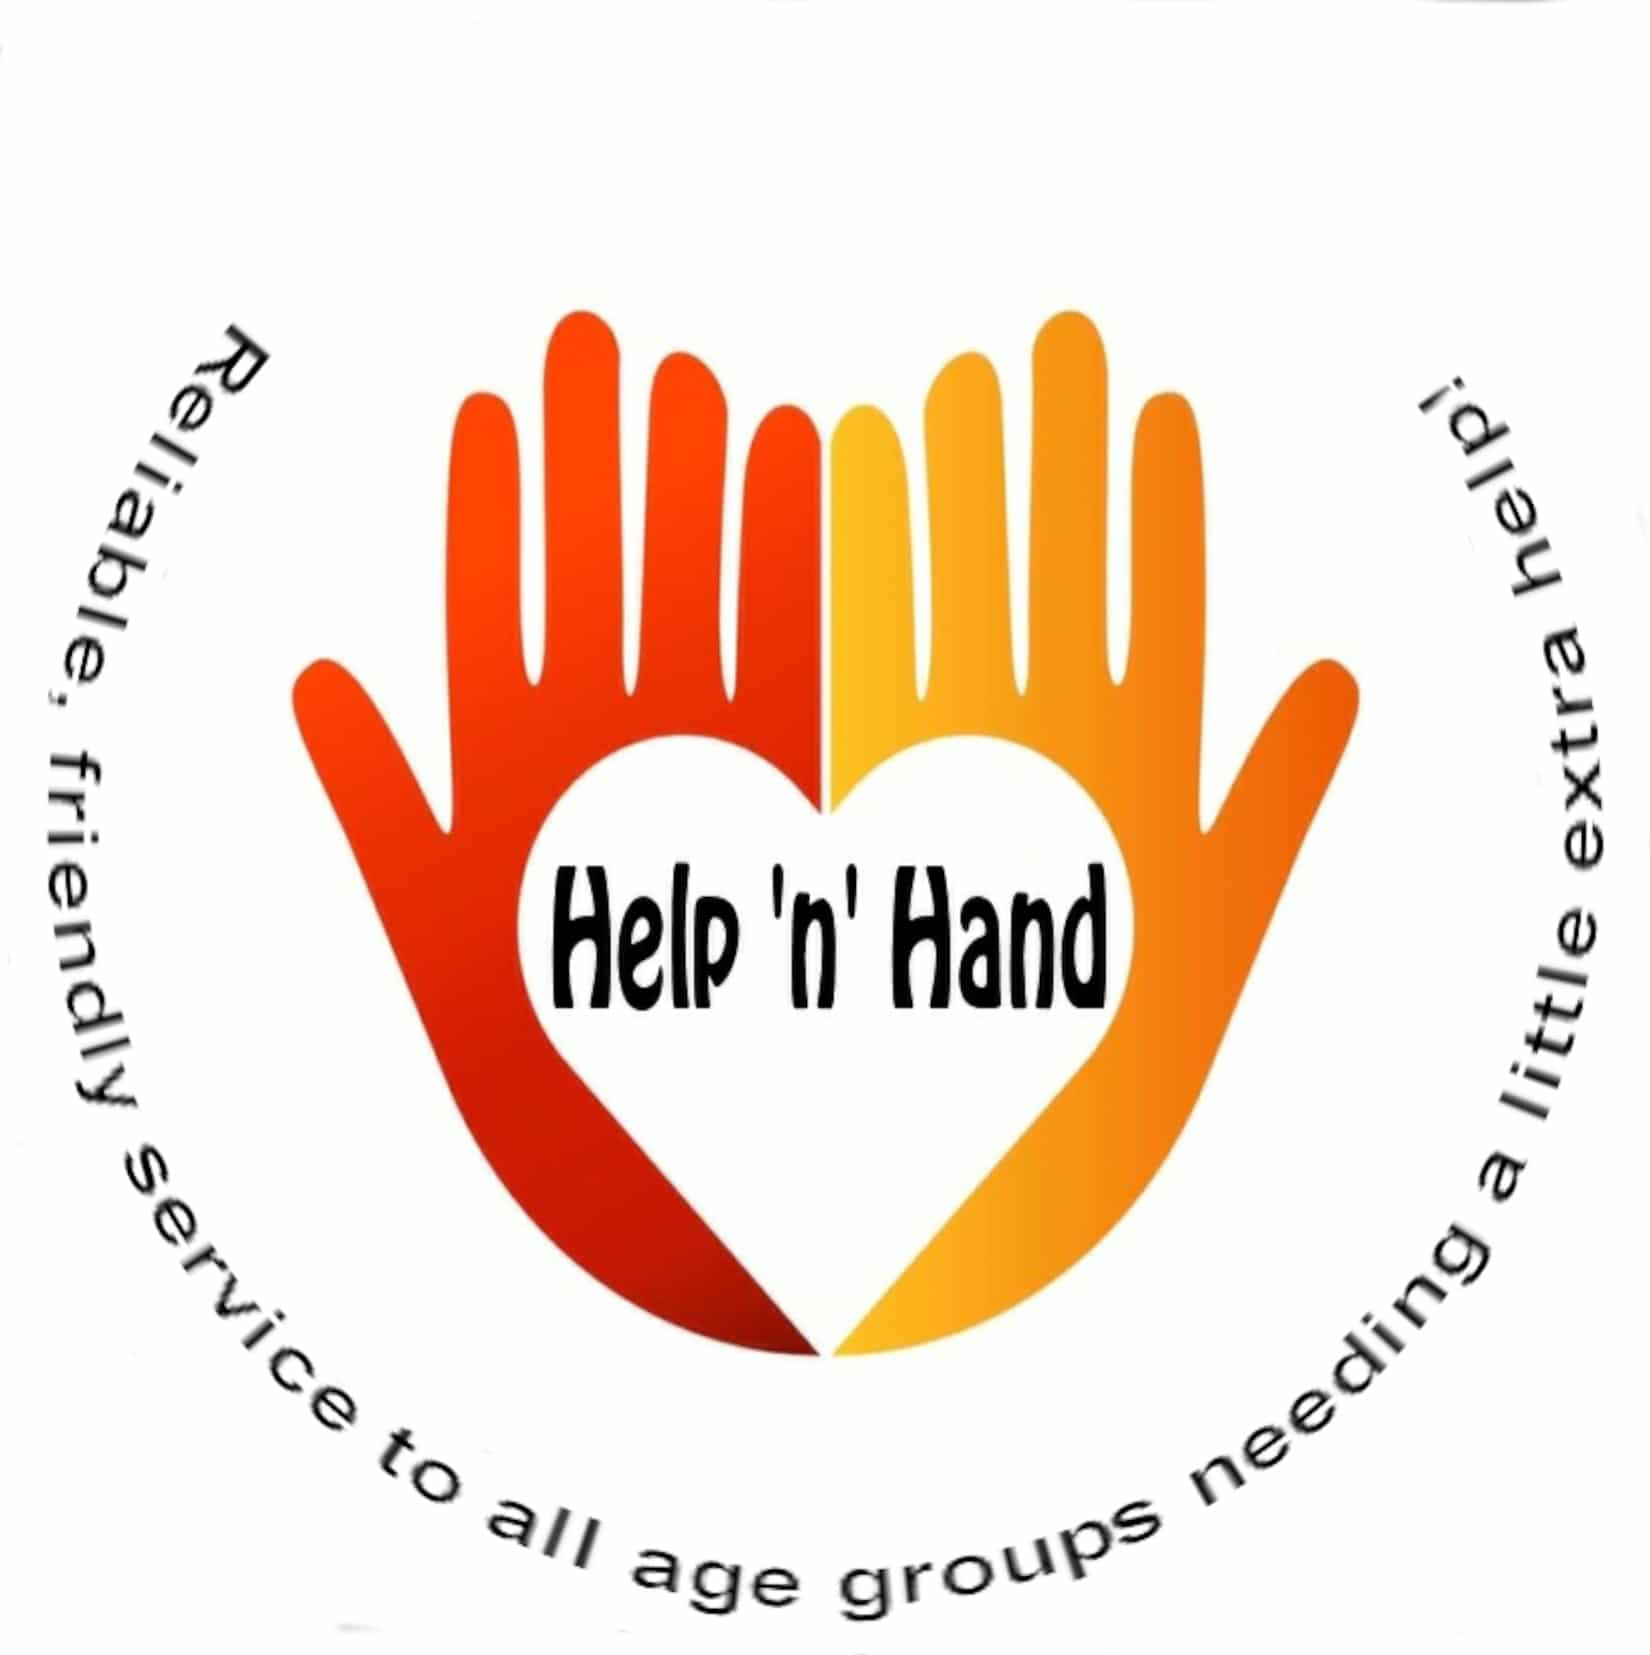 Red and Orange Logo for Help 'n' Hand service